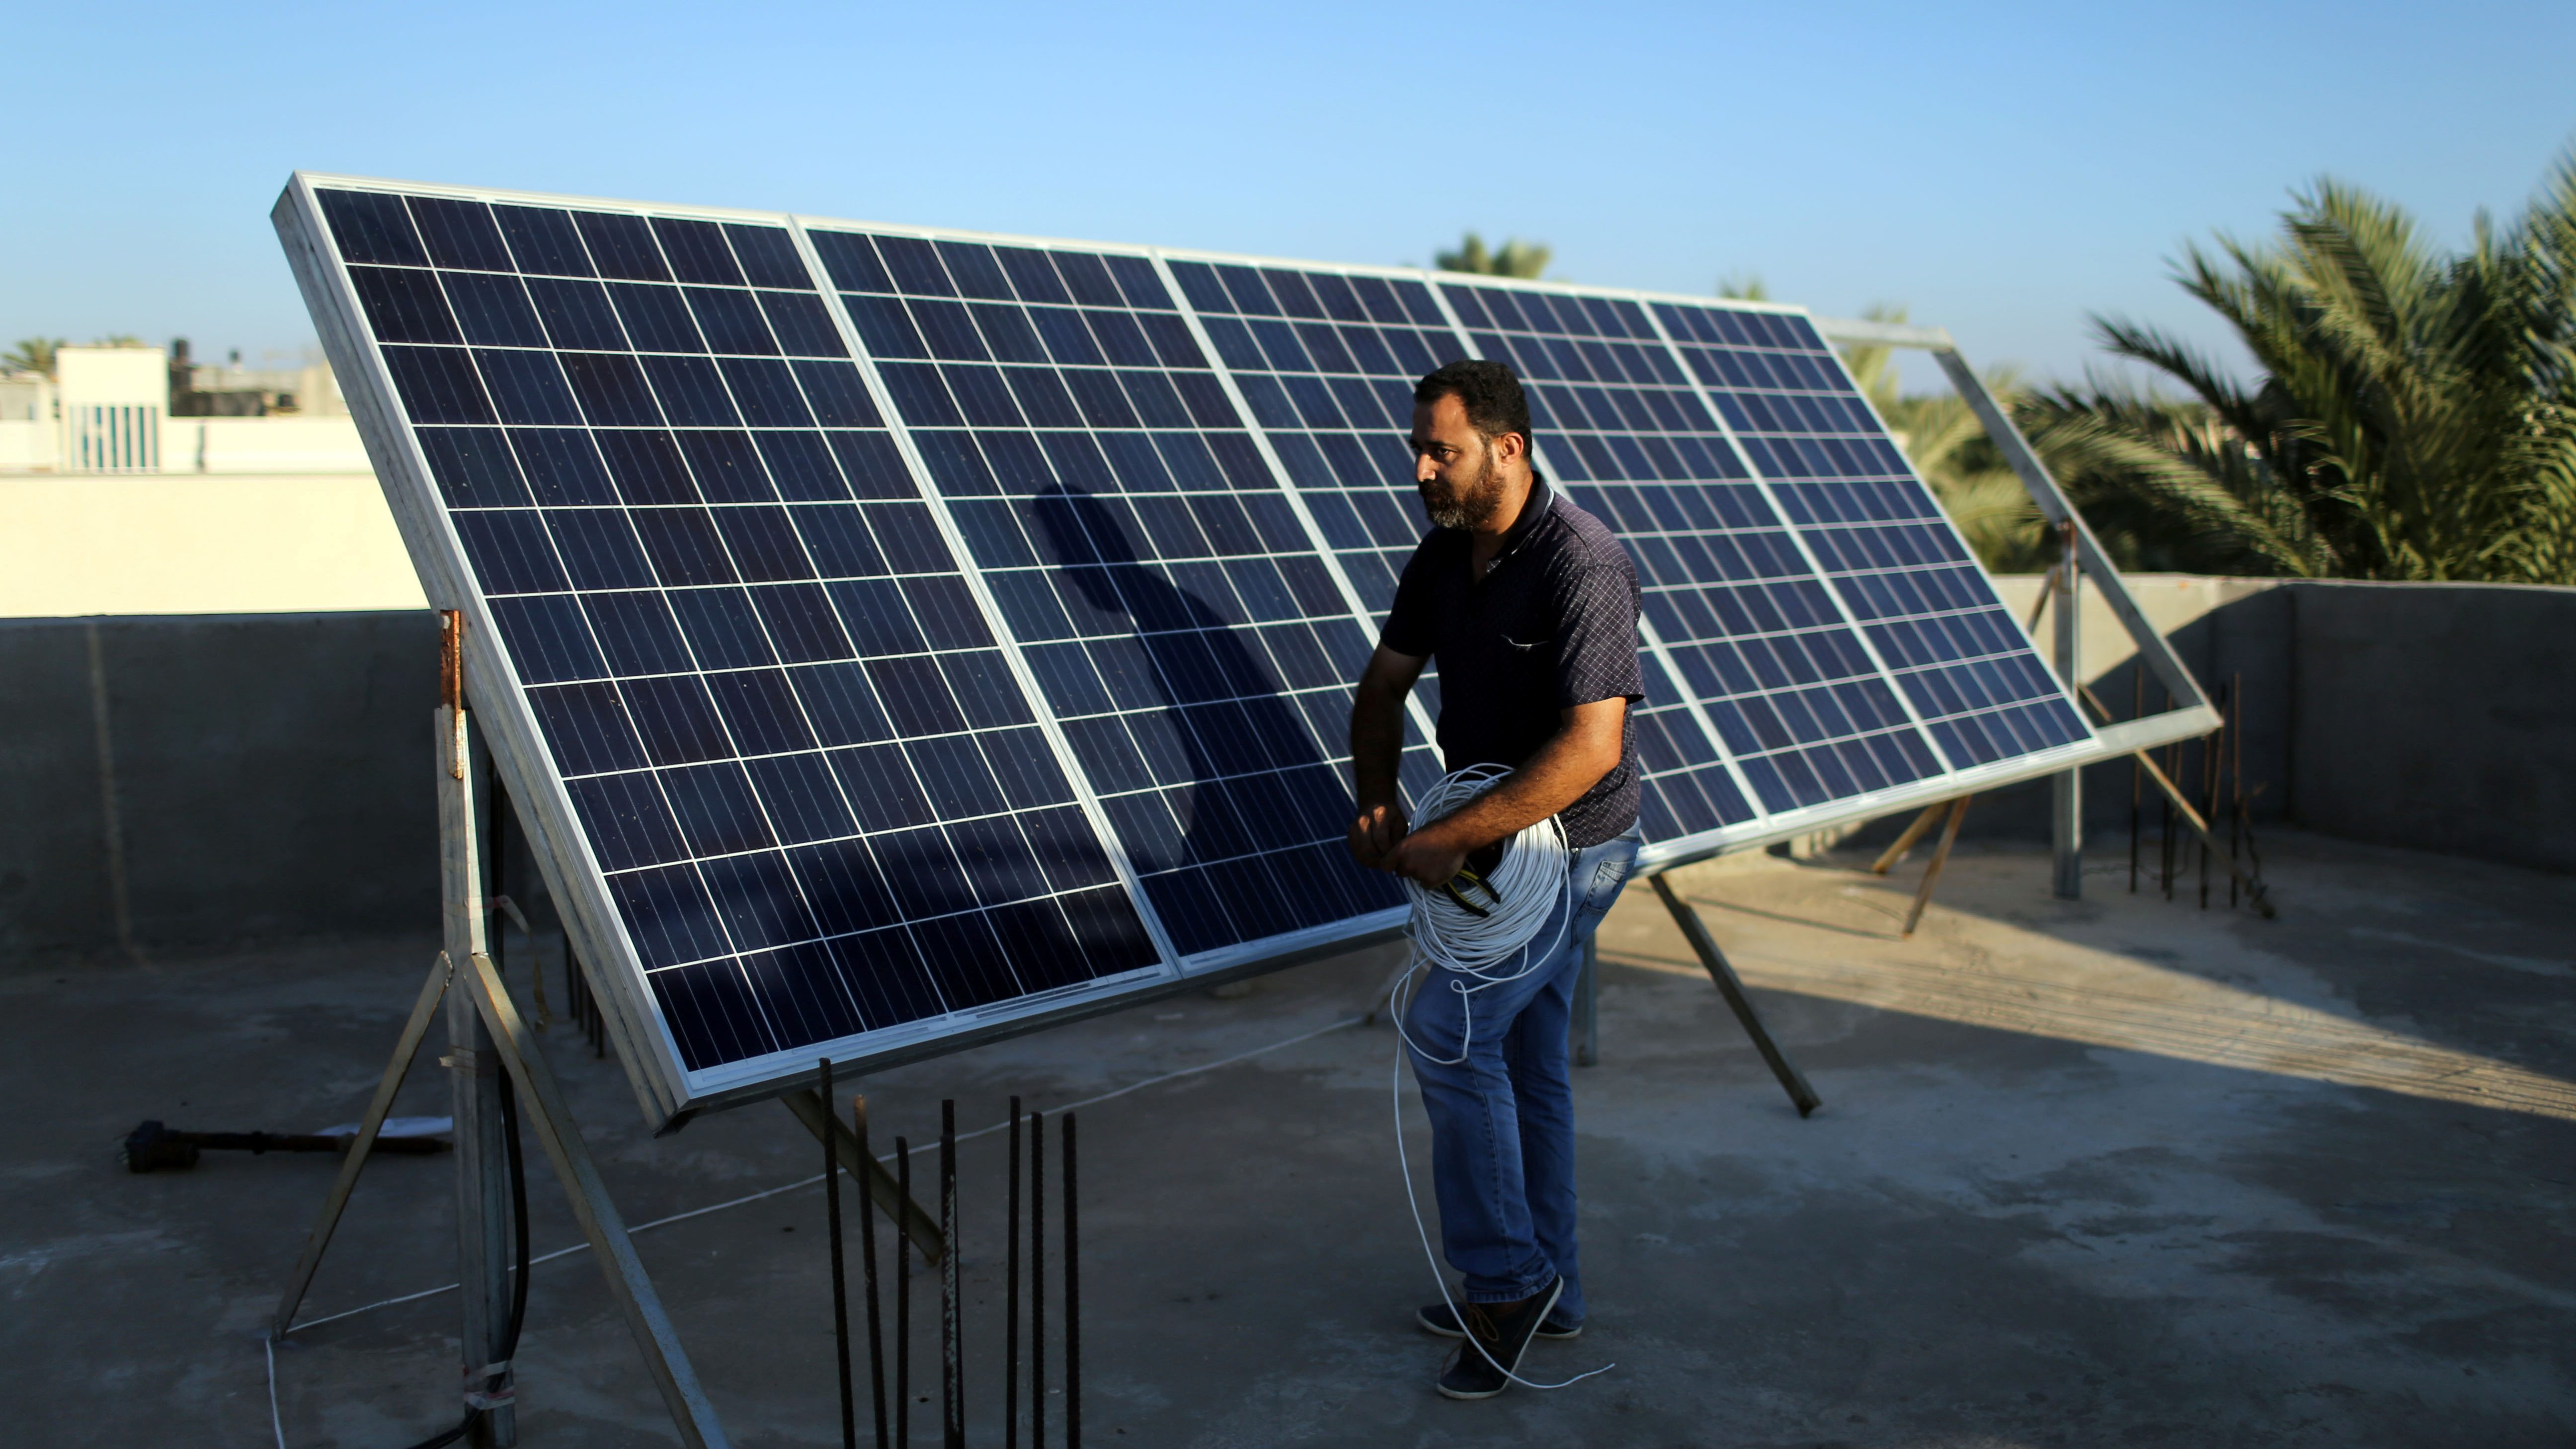 Pune tops rooftop solar installations in India